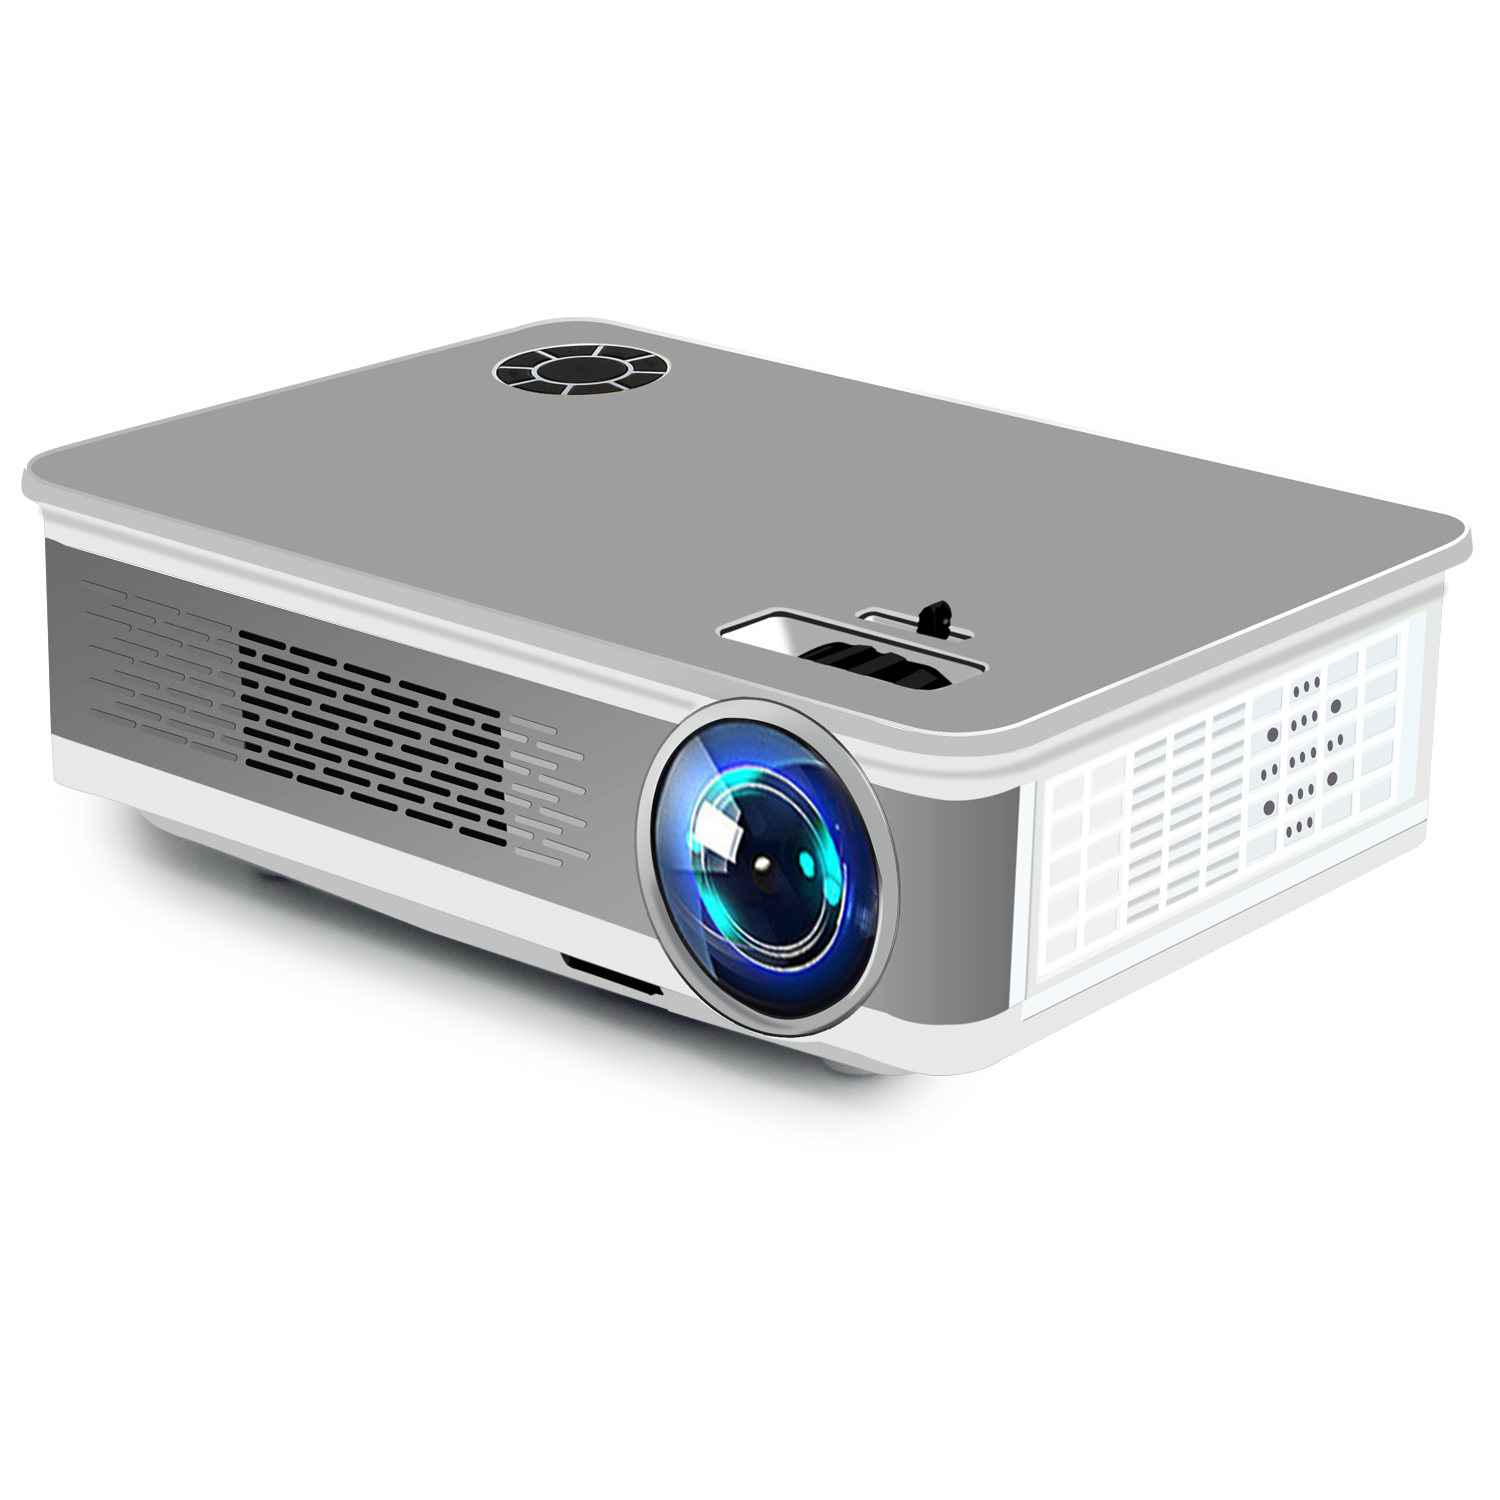 [World CUP Watch ] Walmart Hot Selling  Android wifi Native 1080p full hd digital LED portable video home theater LCD projector